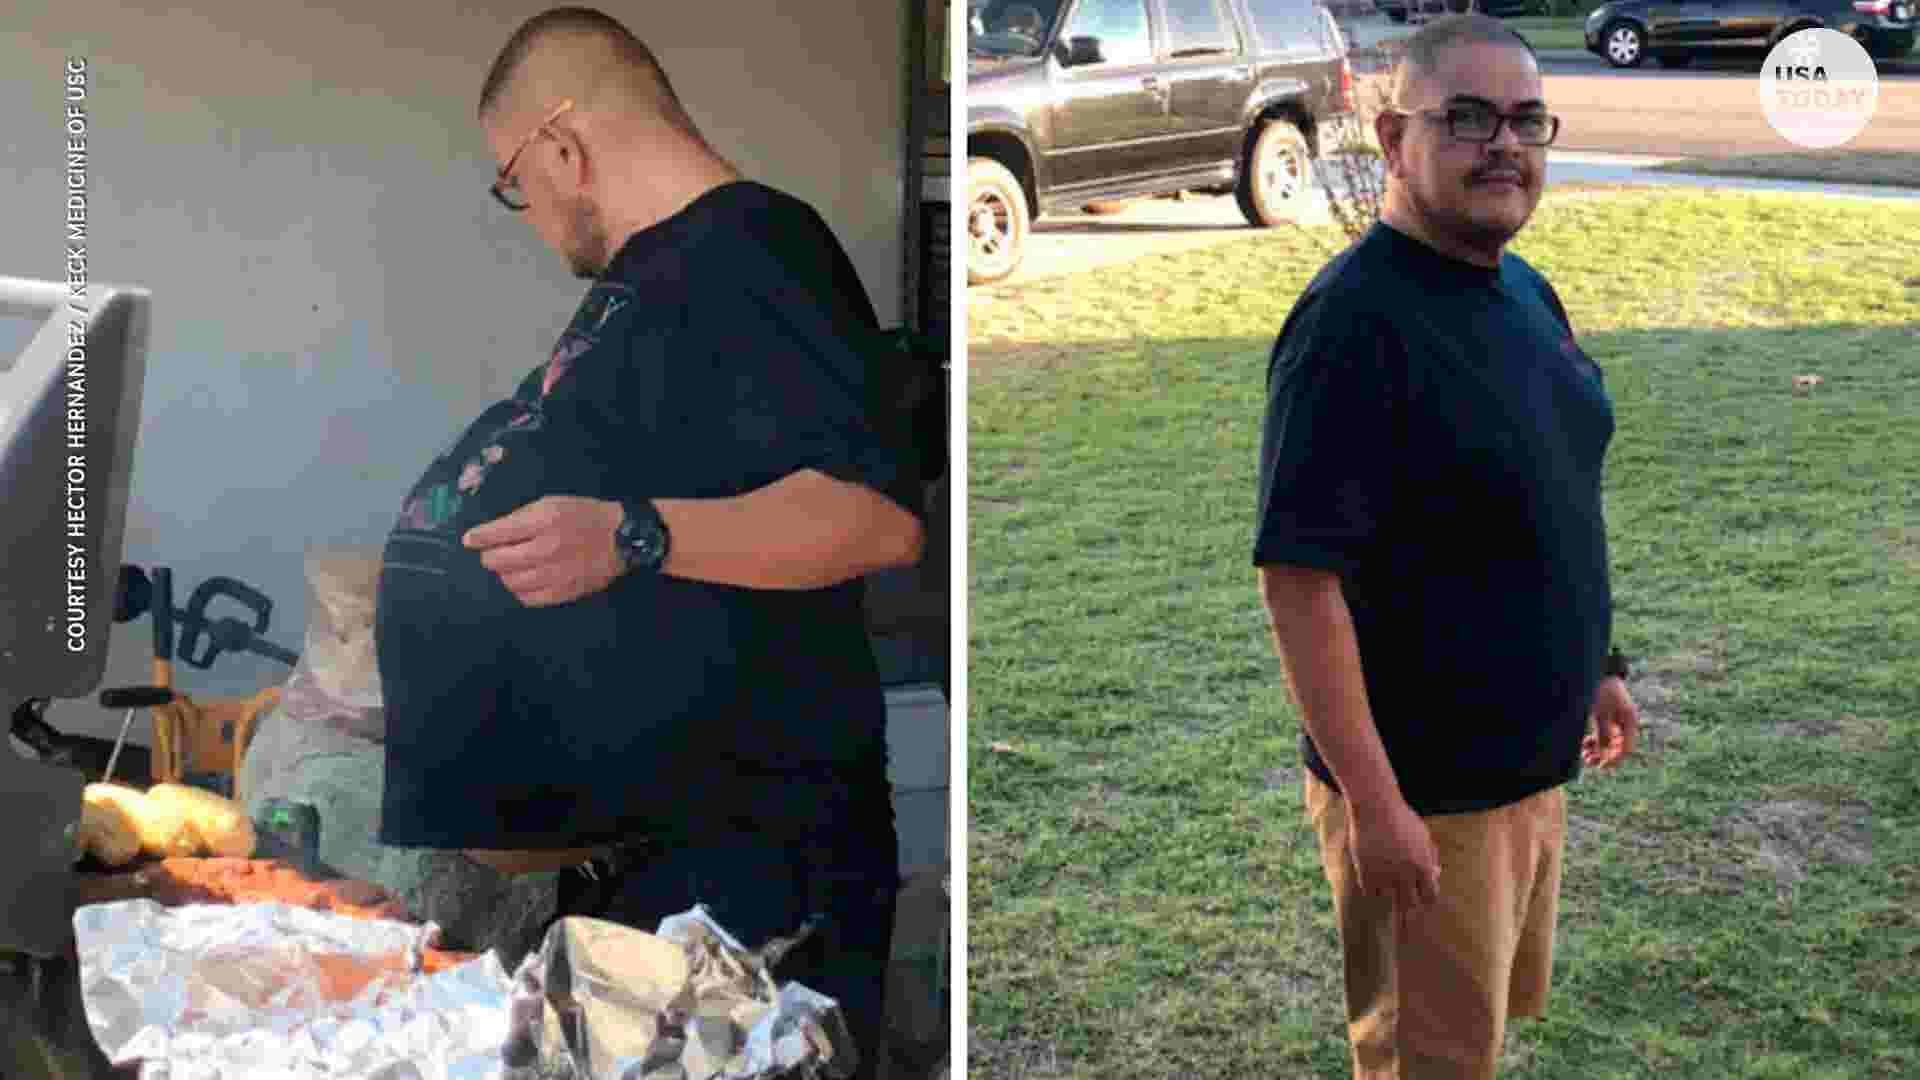 His abnormal beer belly was actually a 77-pound tumor